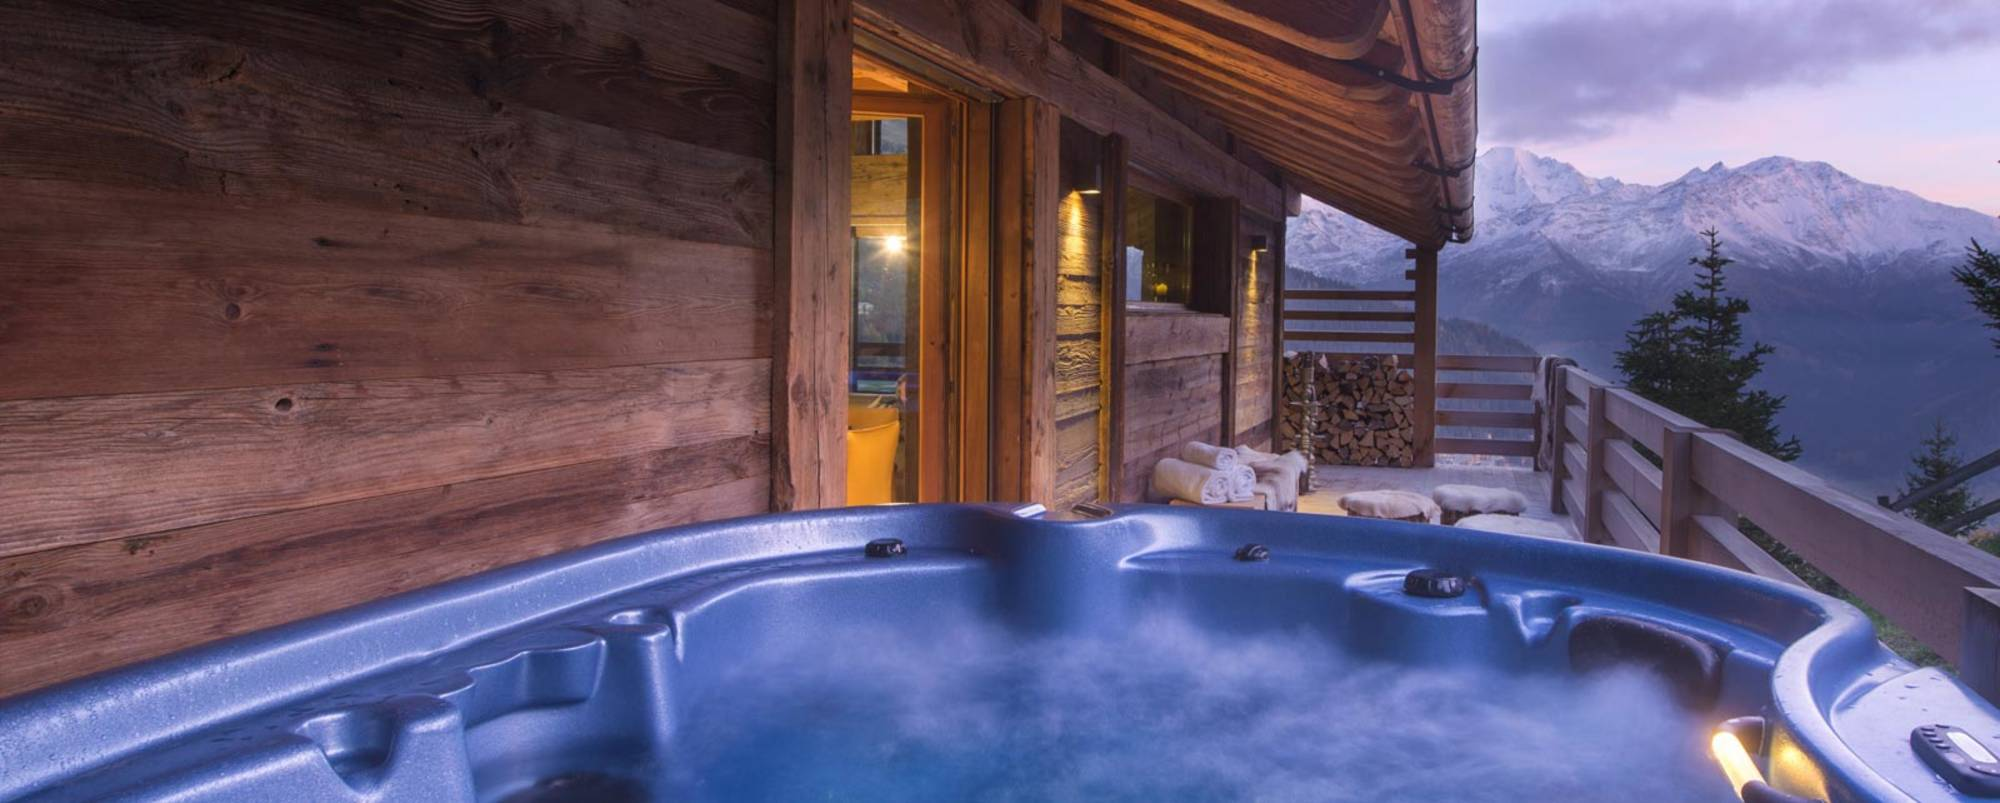 Aplin Roc hot tub - Verbier